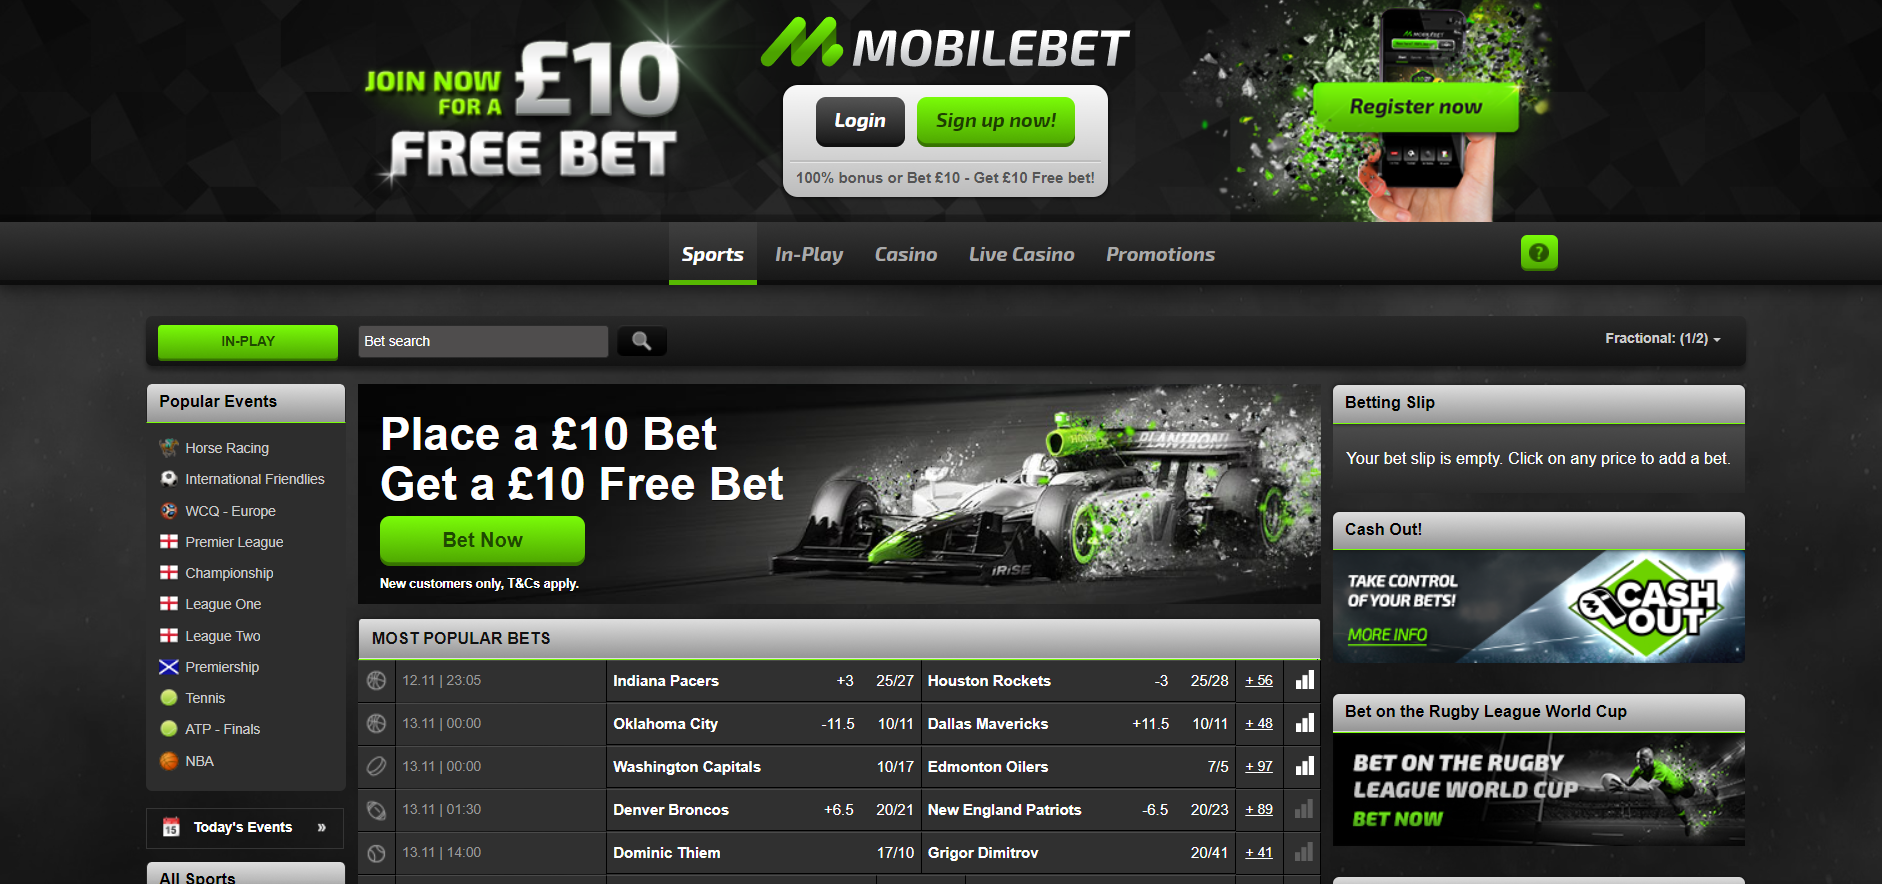 Mobilebet Review and Free Bet - Bet £10 Get £10 Bookmaker